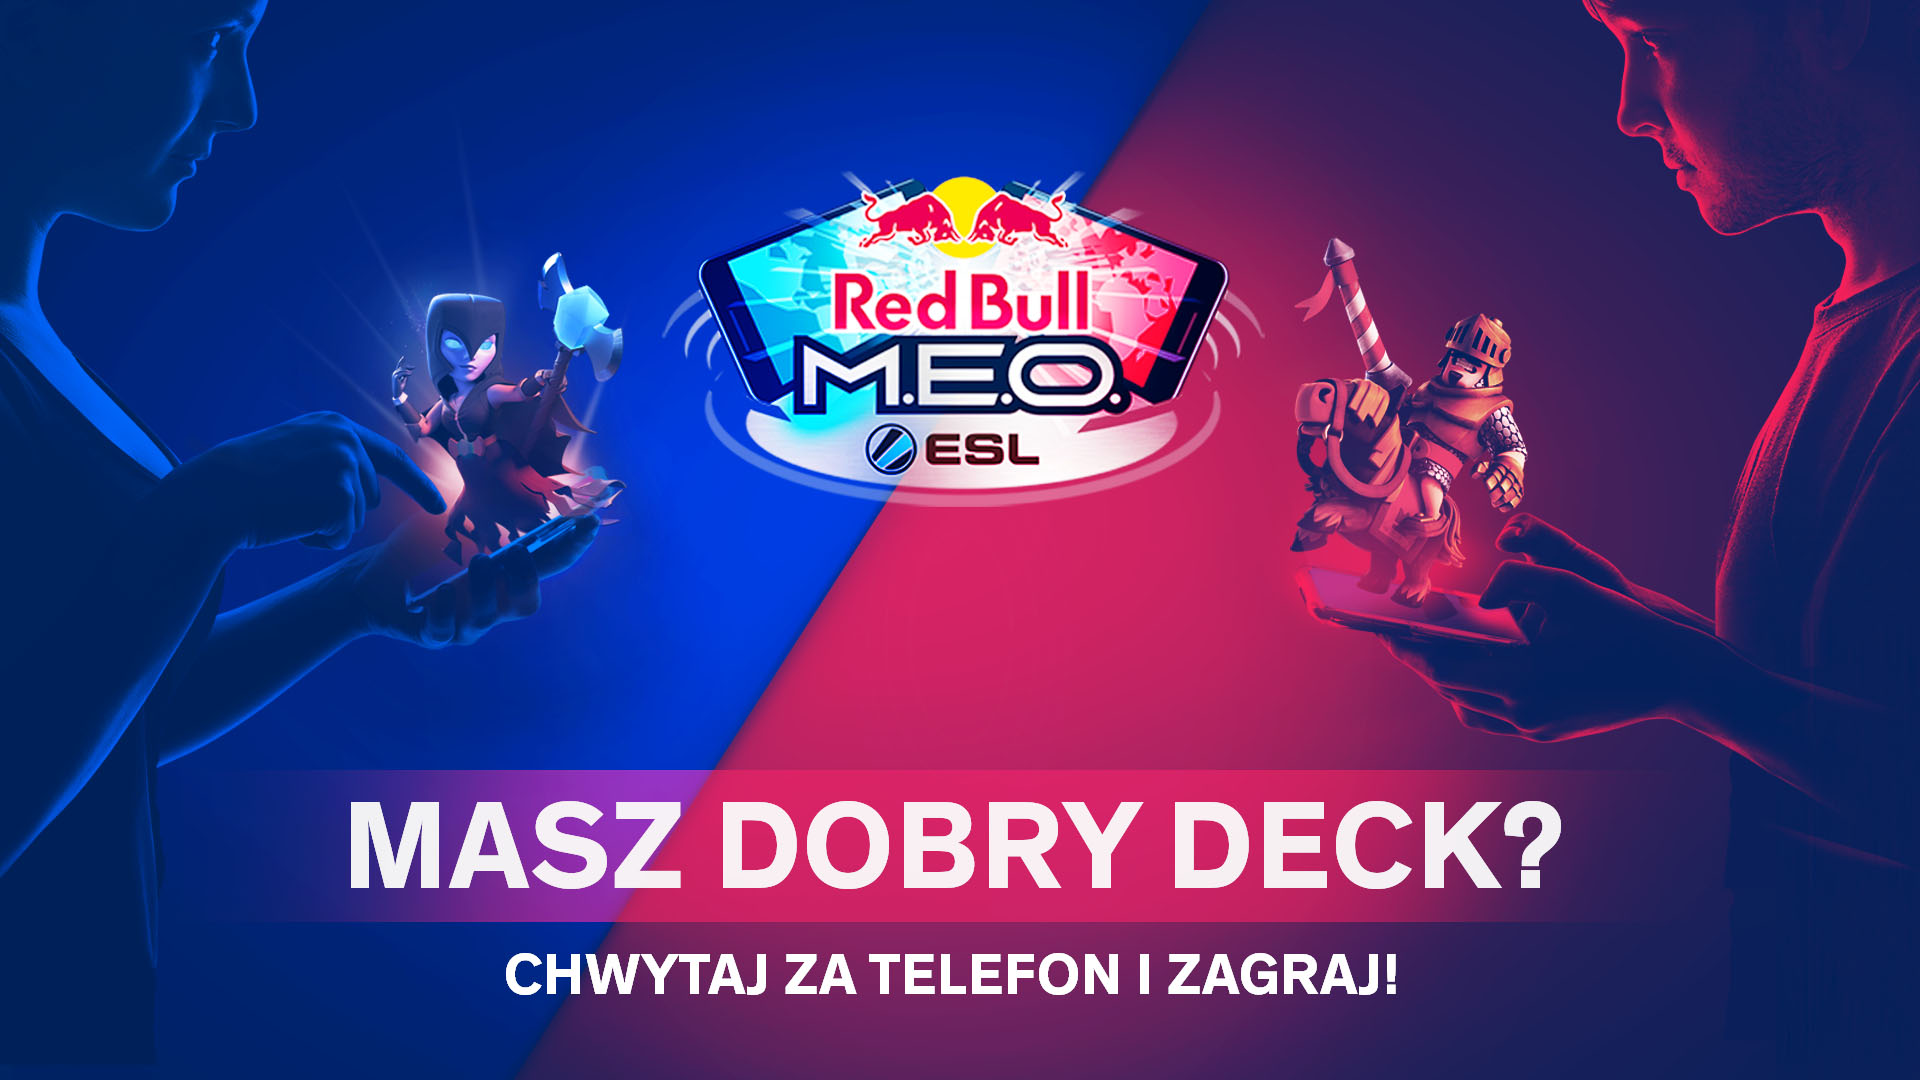 Red Bull M.E.O. by ESL grafika